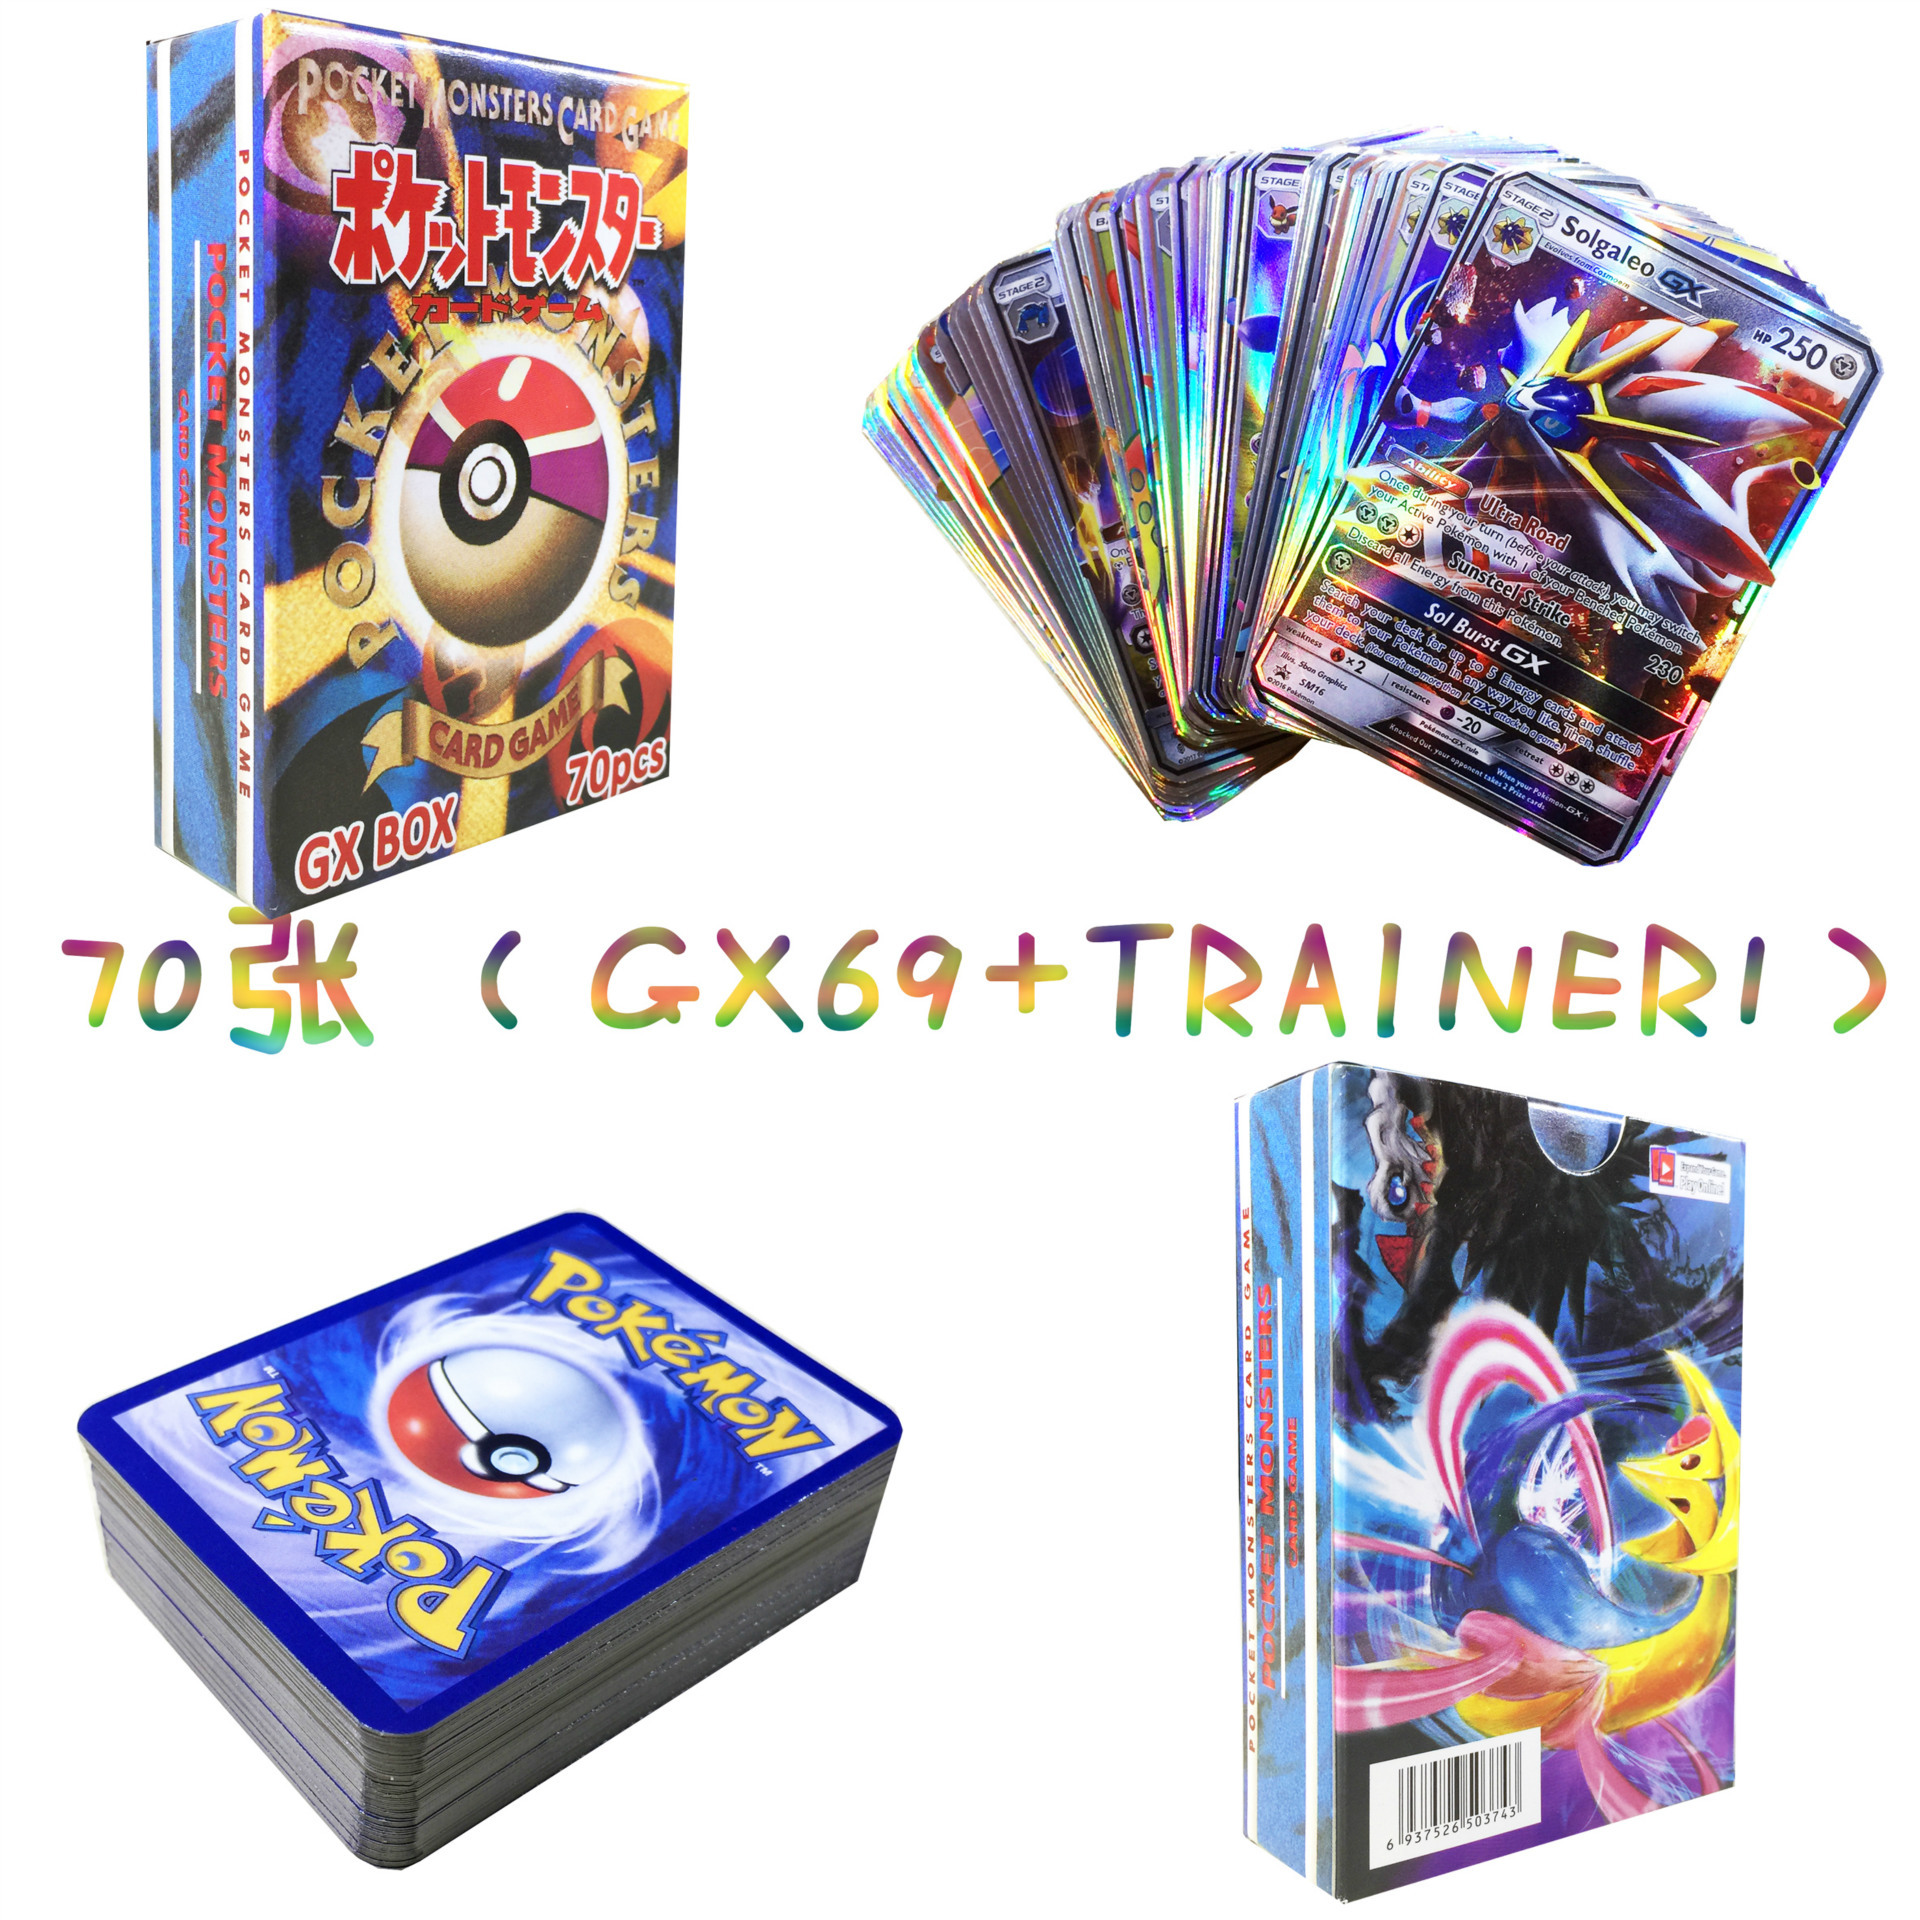 70pcs GX Flash Pokemon Cards TAKARA TOMY Pet Pokemon Cards 2019 The Newest Pokemon English Gx  Card